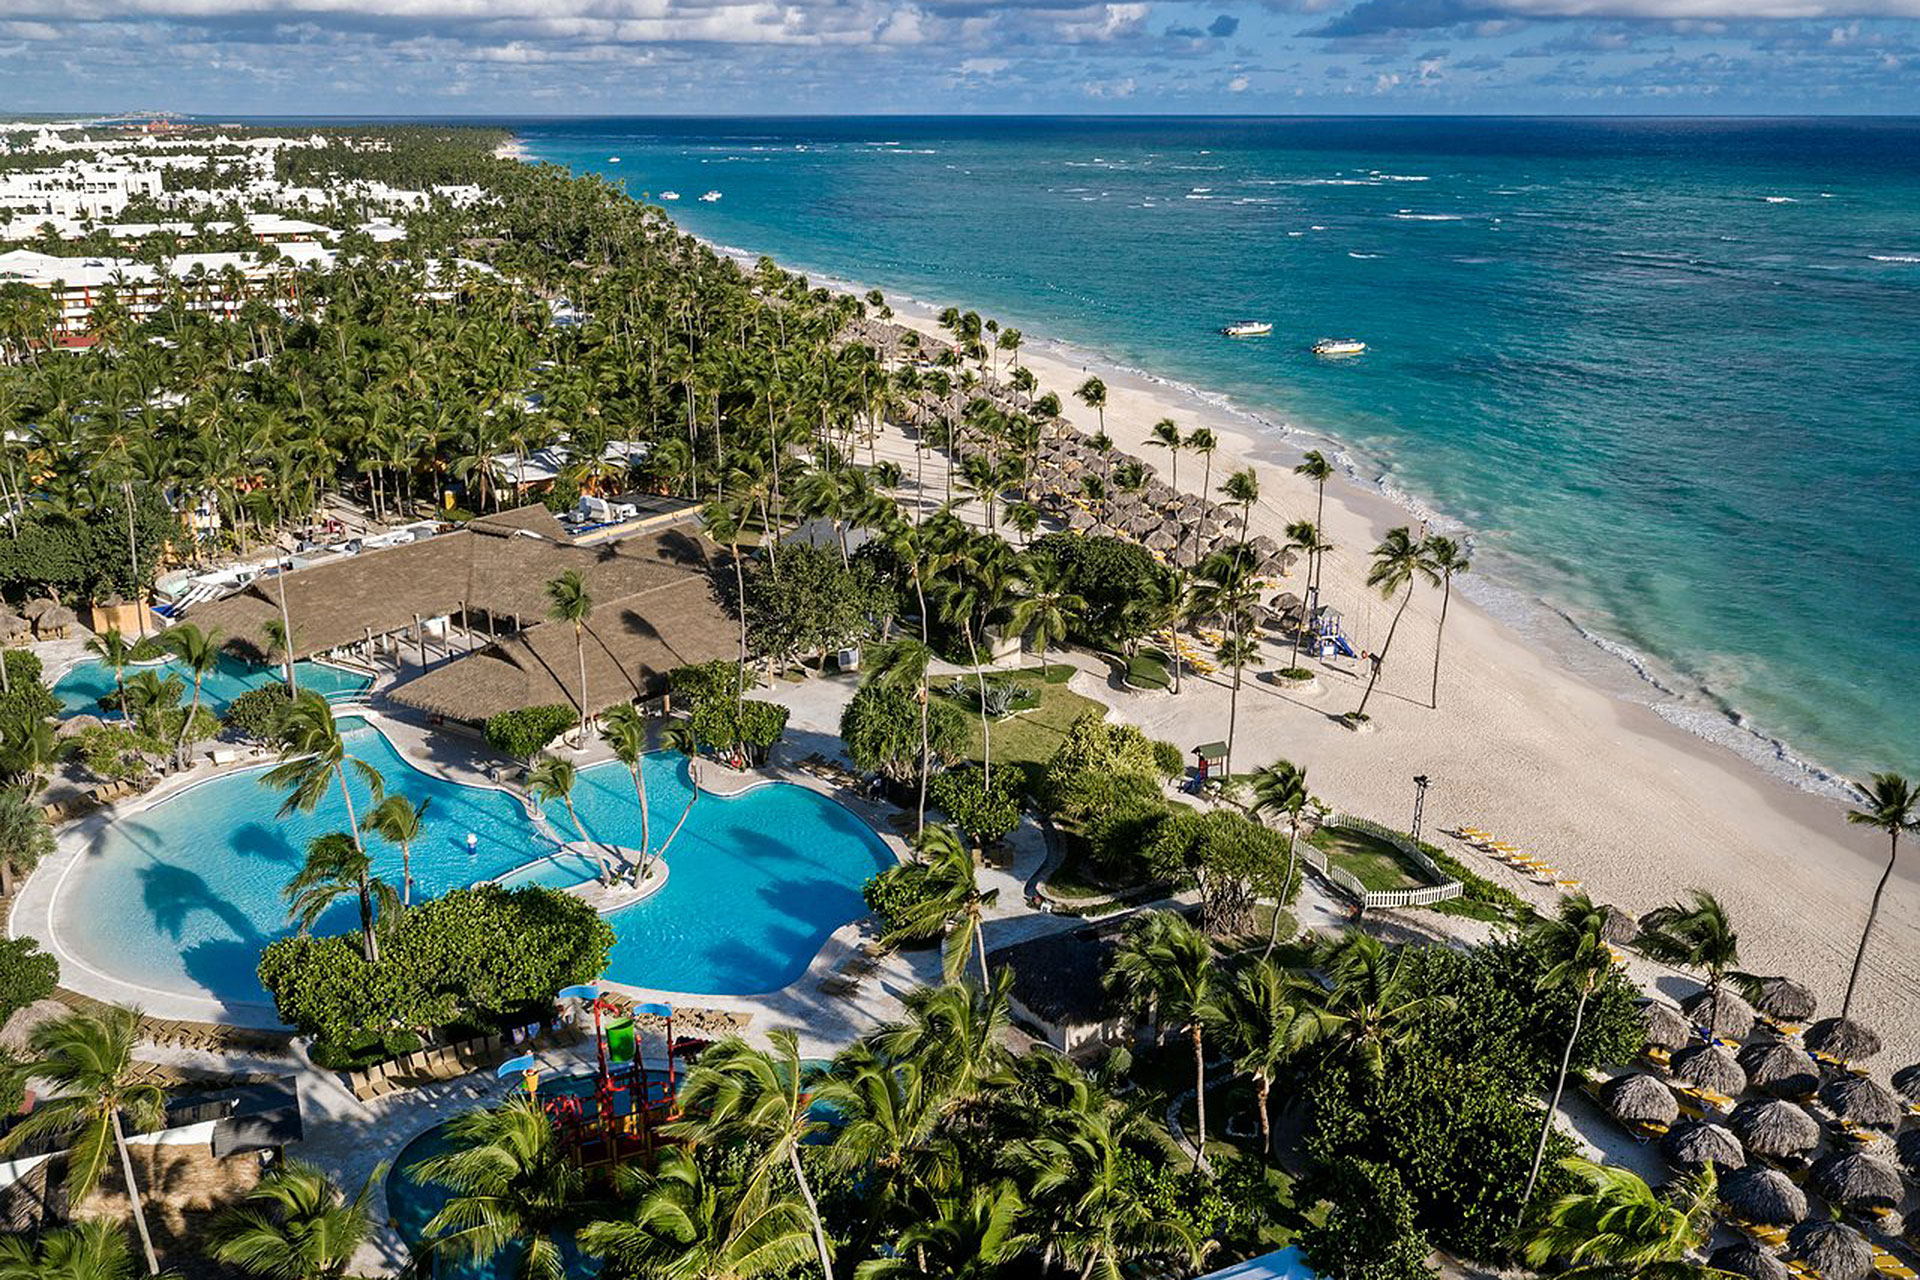 IBEROSTAR Bavaro; Courtesy of IBEROSTAR Hotels & Resorts